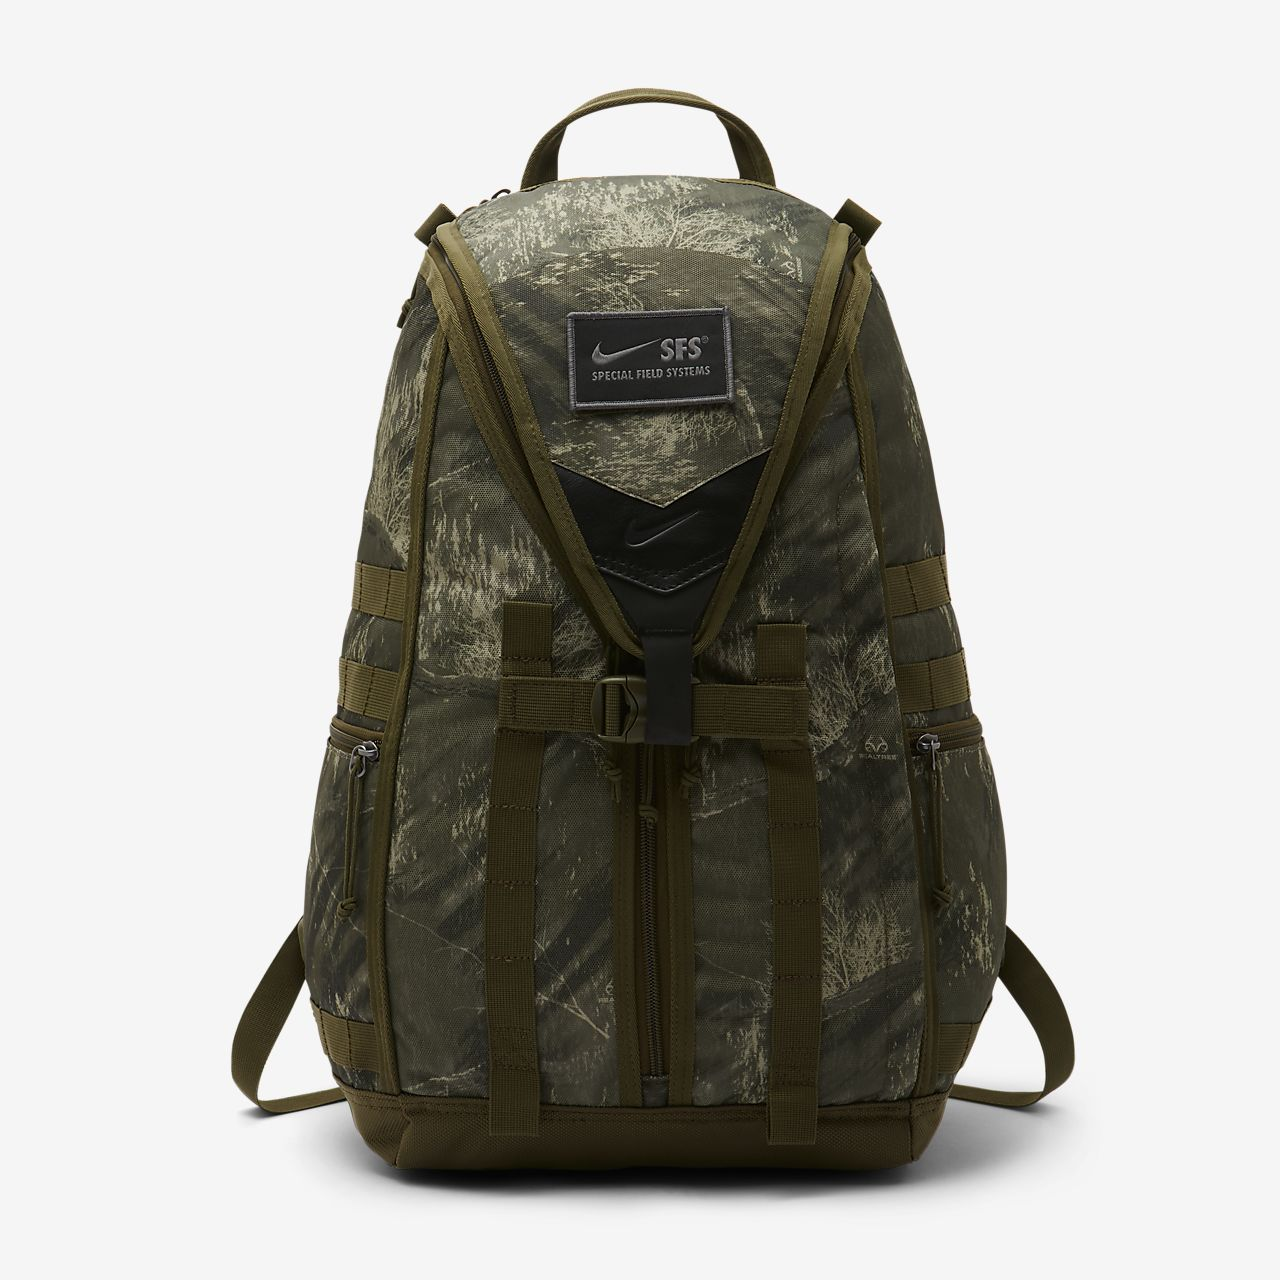 100% authentic 52377 e8eac Low Resolution Nike SFS Recruit Training Backpack Nike SFS Recruit Training  Backpack